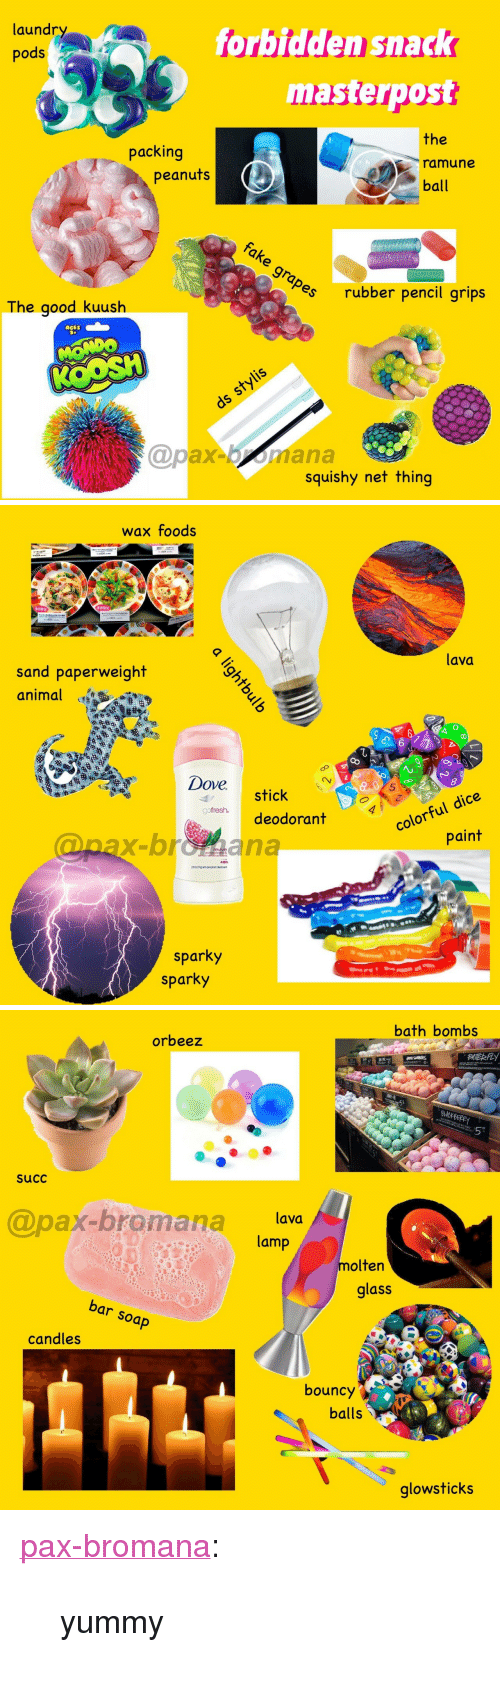 """Dove, Fresh, and Laundry: laundry  pods  forbidden snack  masterpost  the  ramune  ball  packing  peanuts  es  rubber pencil grips  The goodk  uushh  ACES  @pax-bmana  squishy net thing   wax foods  lava  sand paperweight  animal  Dove  8  5  stick  deodorant  colorful dice  paint  fresh.  @nax-broiana  sparky  sparky   bath bombs  orbeez  succ  @pax-bromana lava  lamp  molten  glass  bar soap  candles  bouncy  balls  glowsticks <p><a href=""""https://pax-bromana.tumblr.com/post/168980997414/yummy"""" class=""""tumblr_blog"""">pax-bromana</a>:</p><blockquote><p>yummy</p></blockquote>"""